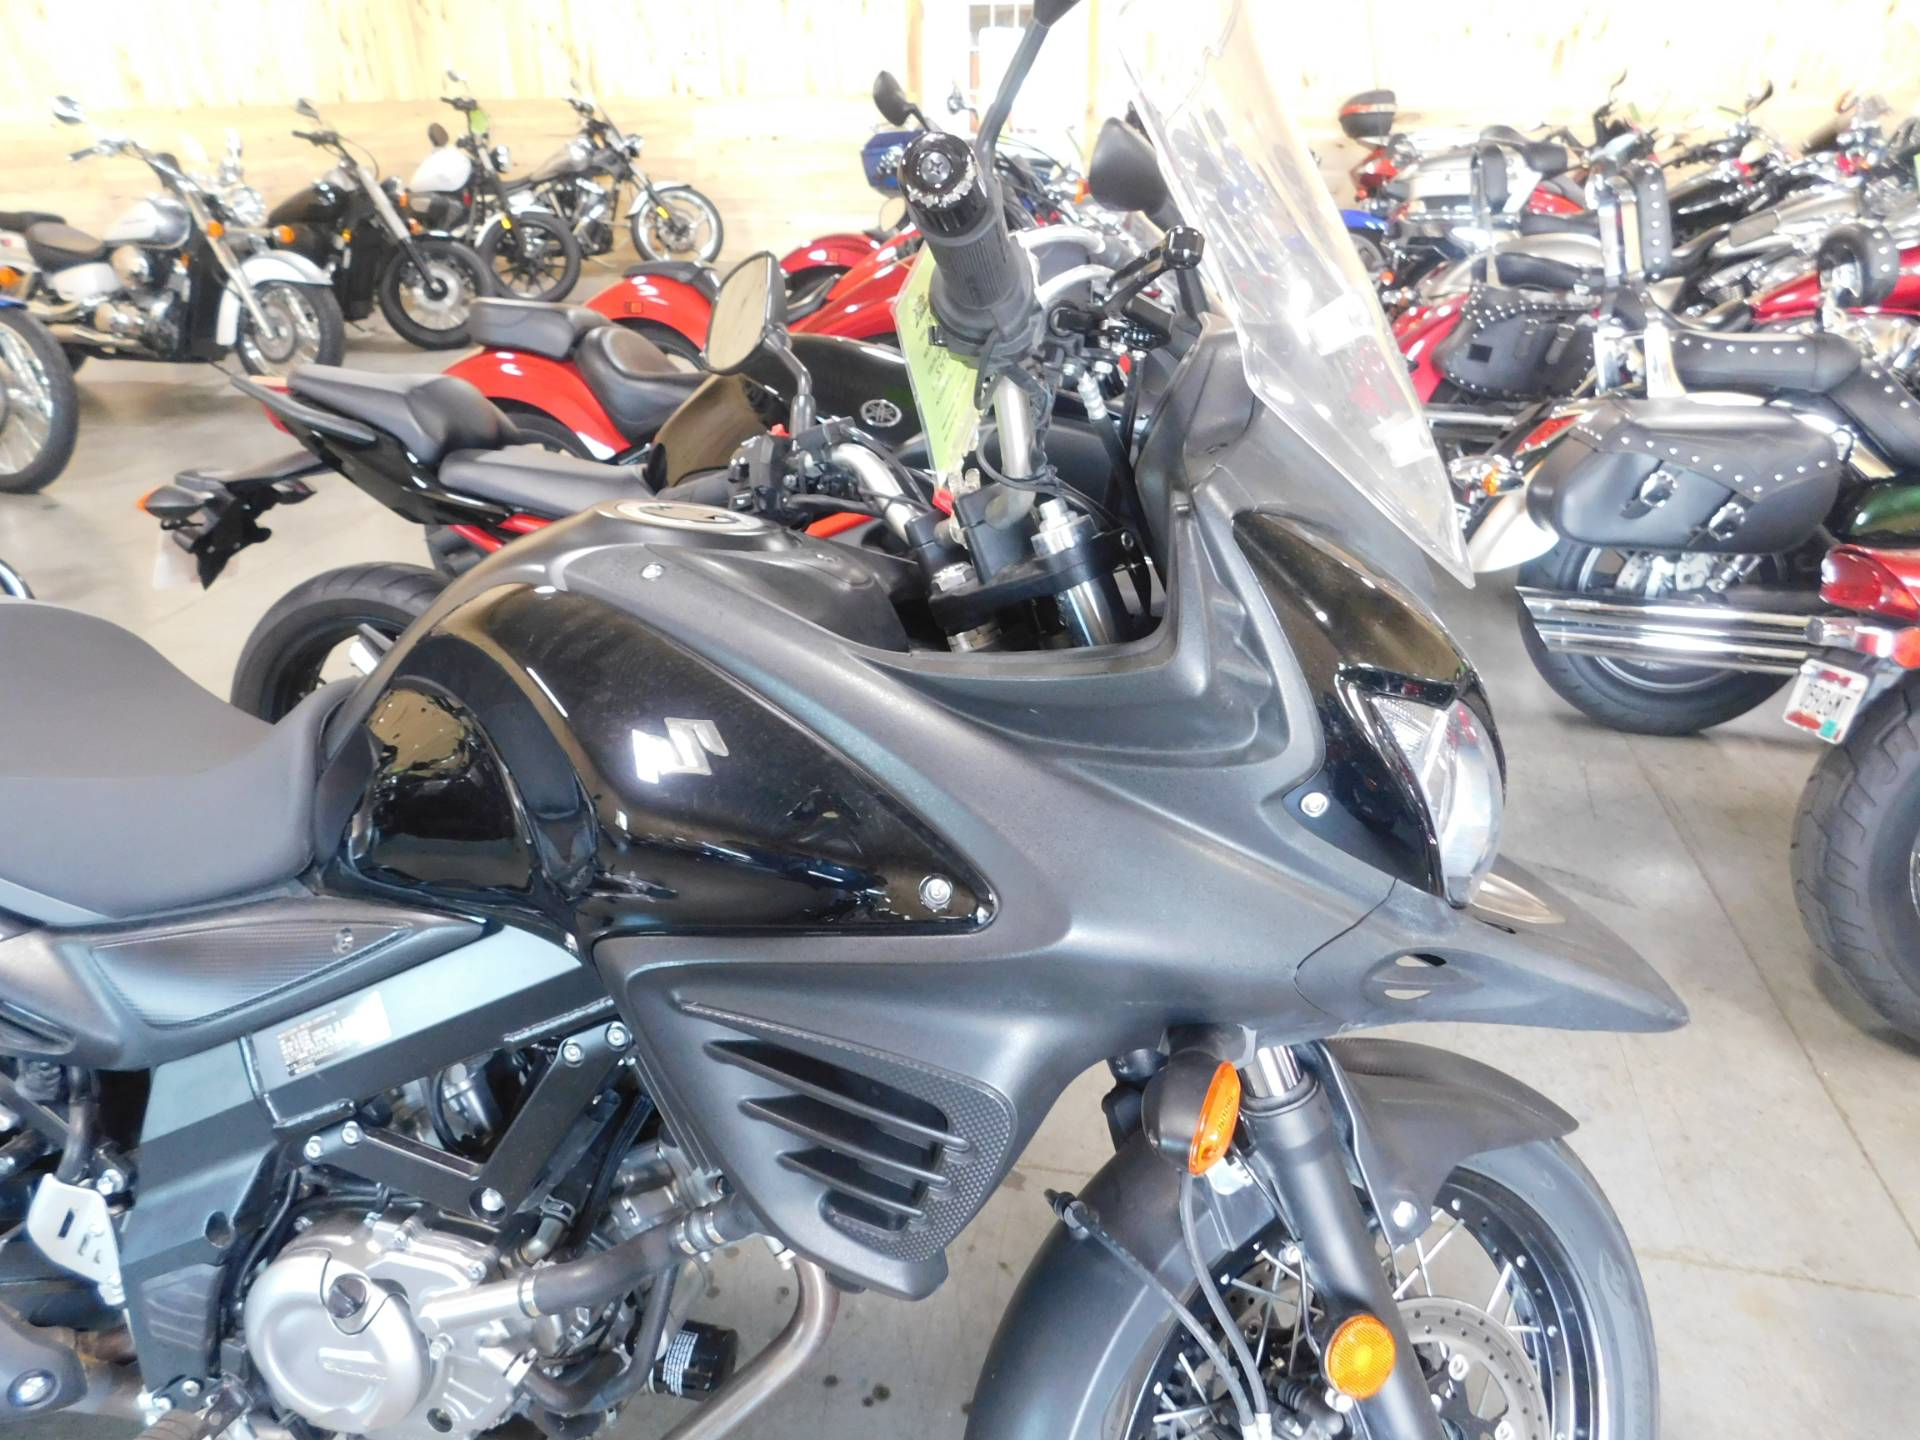 2016 Suzuki V-Strom 650 ABS in Sauk Rapids, Minnesota - Photo 3